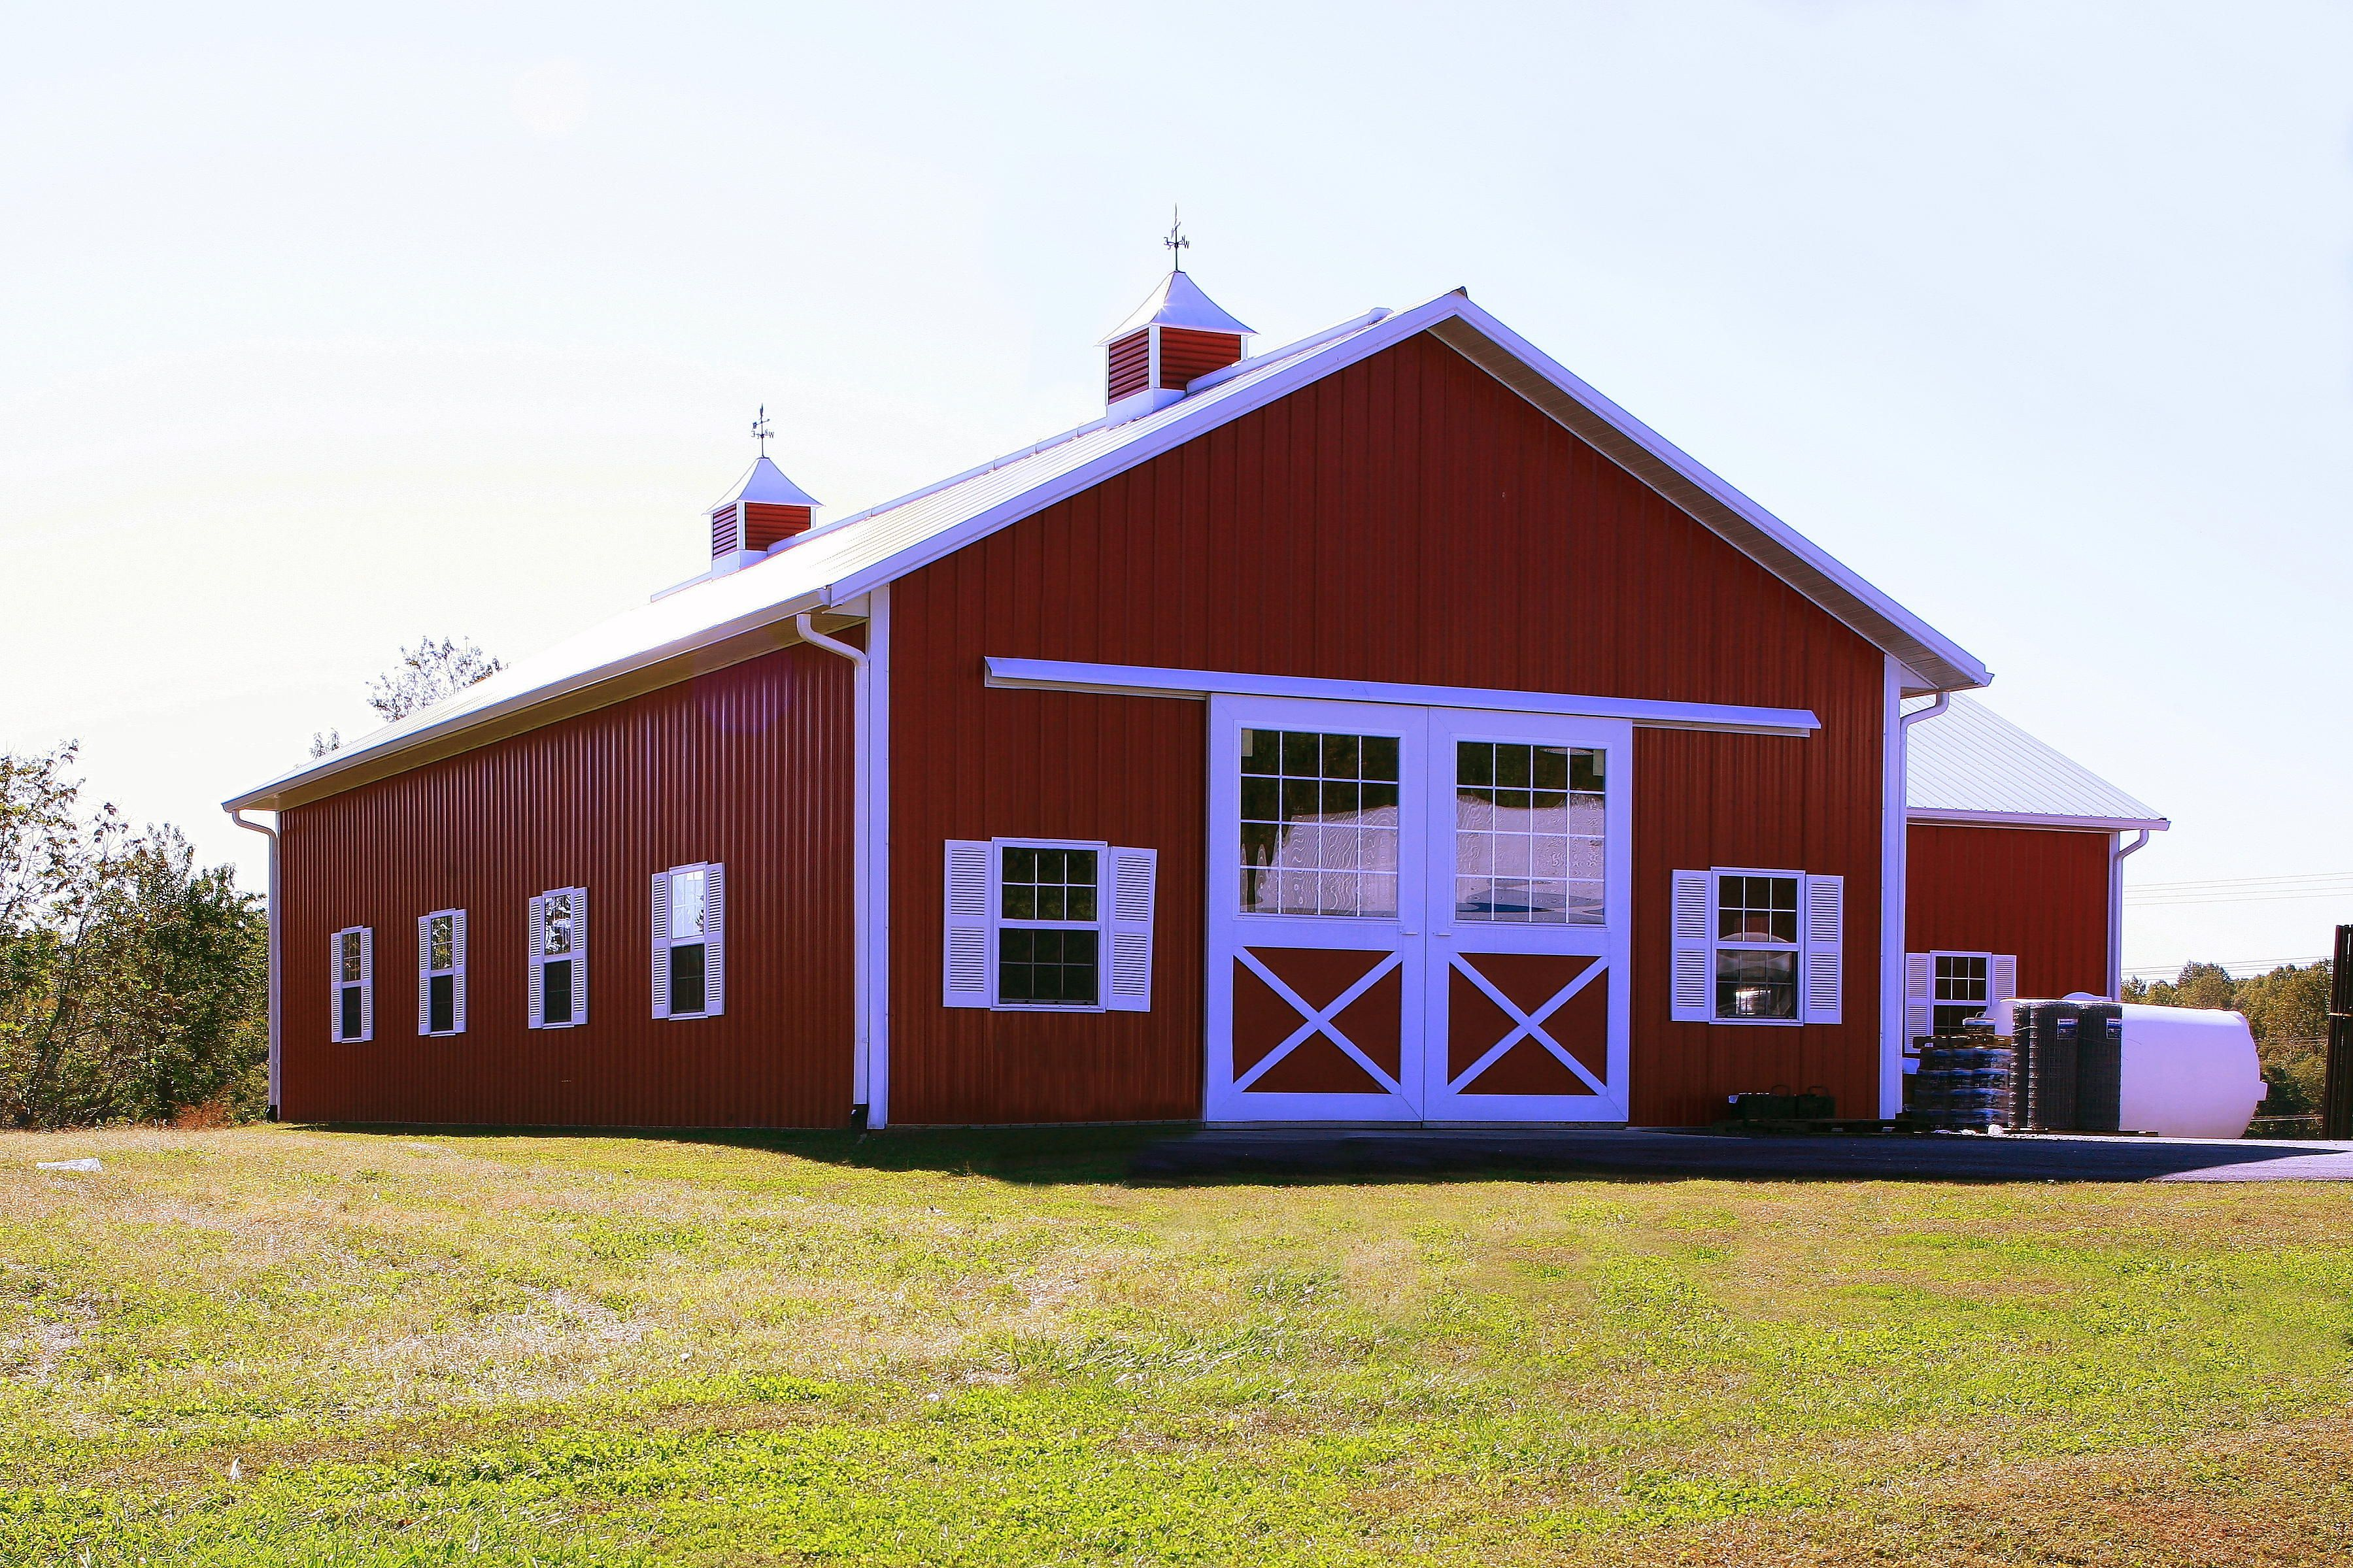 Custom Built Pole Barn Open Space For Storage Brite Red Siding Brite White Roof Trim Copula On Top For Venting Sliding Roof Trim Red Barn Door Building